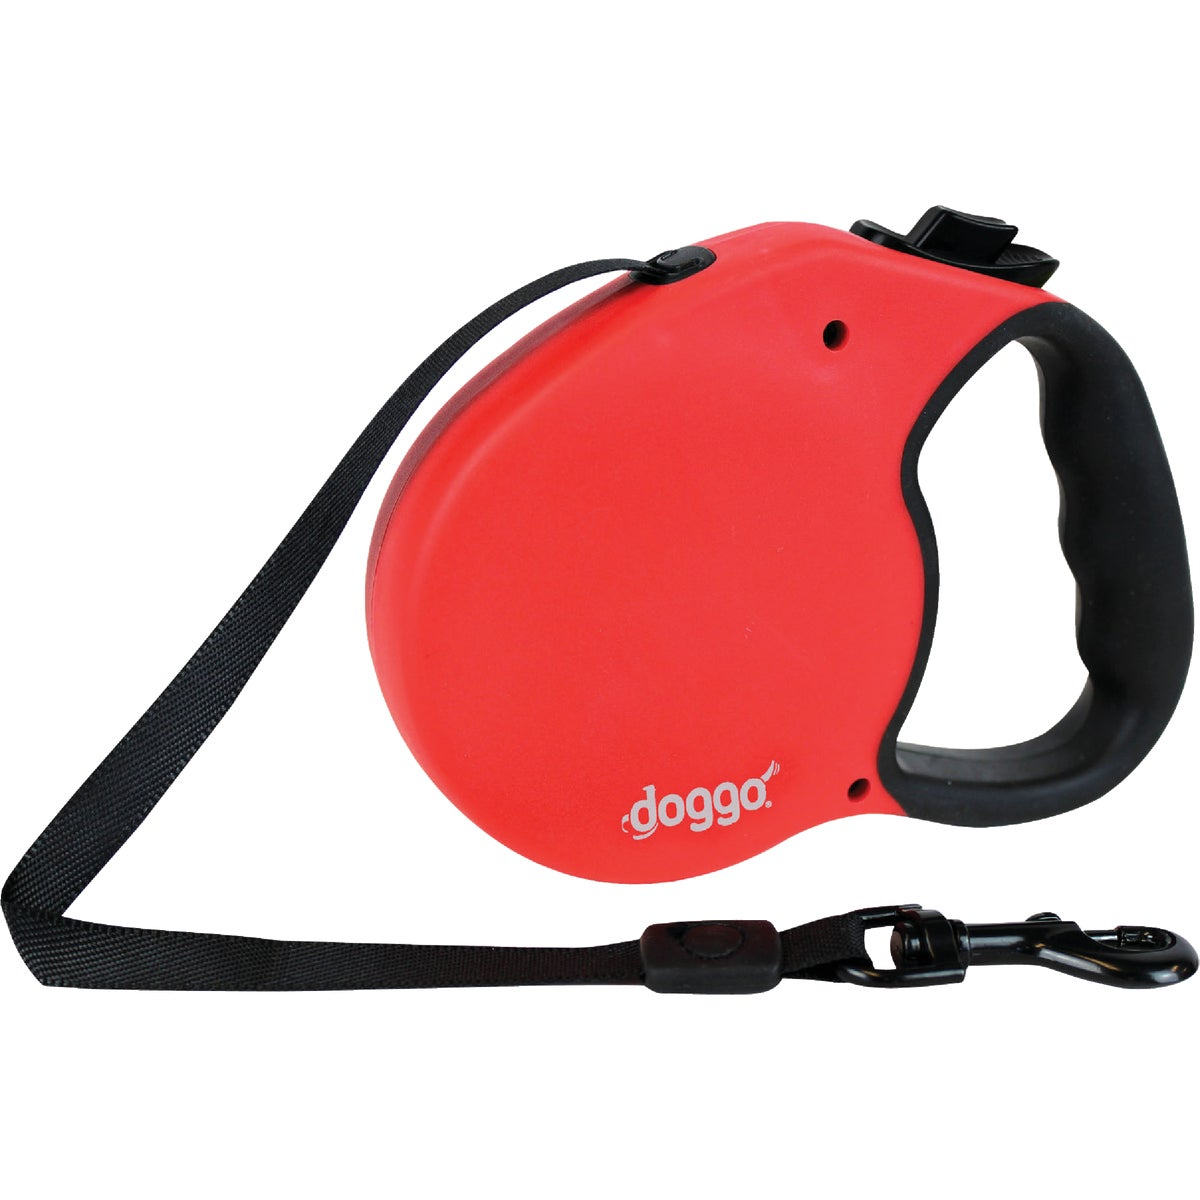 MD RED RETRACTABLE LEASH - 2-5RD by Flexi Usa Inc